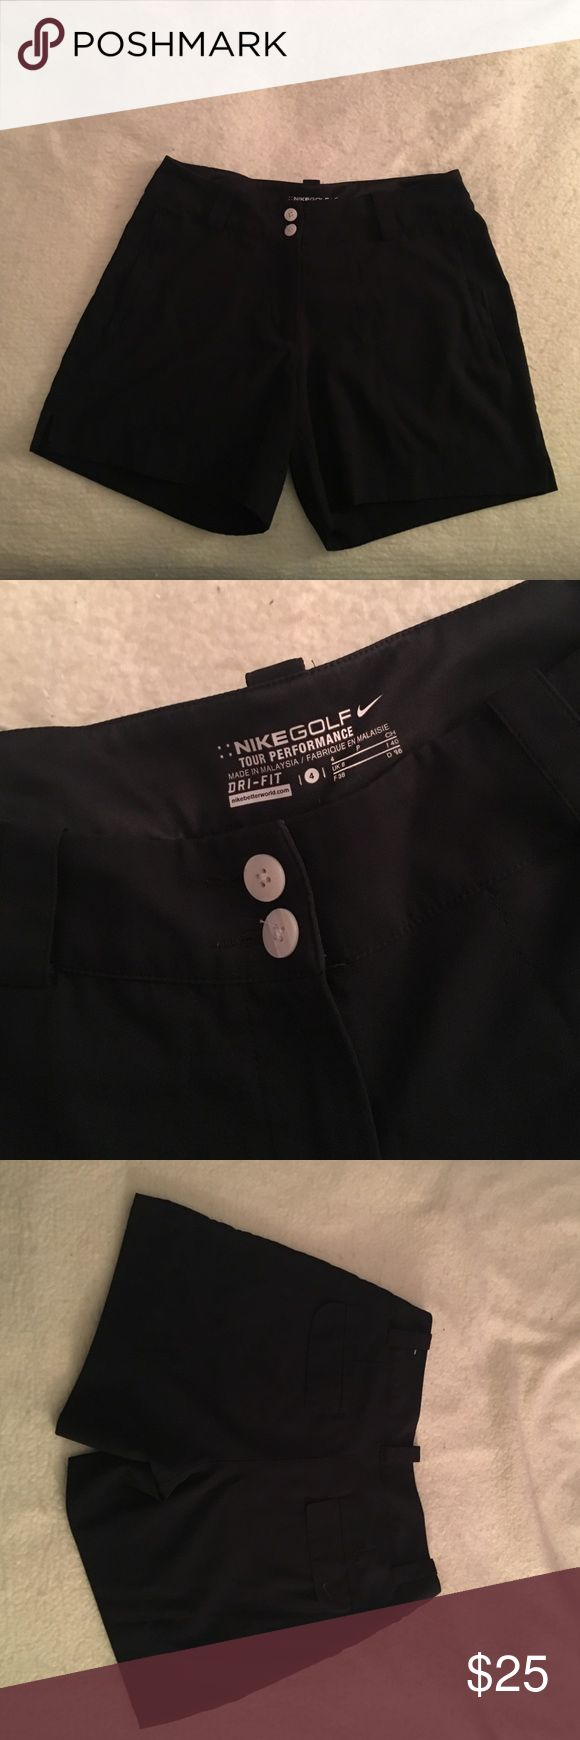 Black Nike Golf Shorts Black Nike Women's Golf Shorts - Zippered Pockets on Front -Double Buttons -Fold Over Pockets on Back - Belt Loops -Tour Performance -Dri-Fit  -LIKE NEW!! Also Available in Cream Color!! Both Sold Separately! Nike Shorts